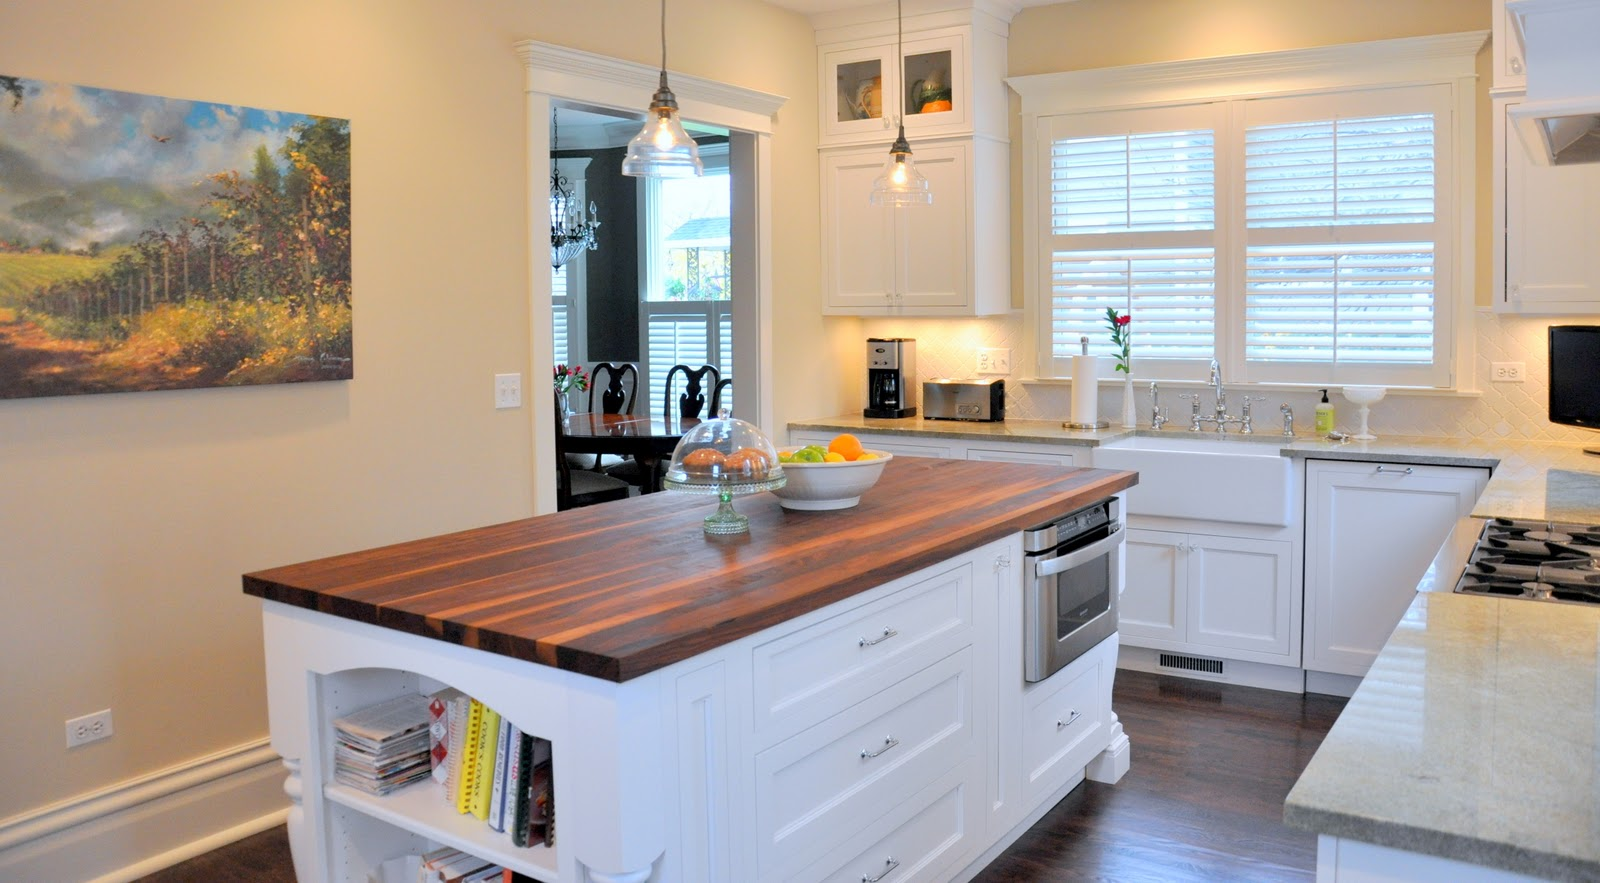 White Lshaped Kitchen with Island